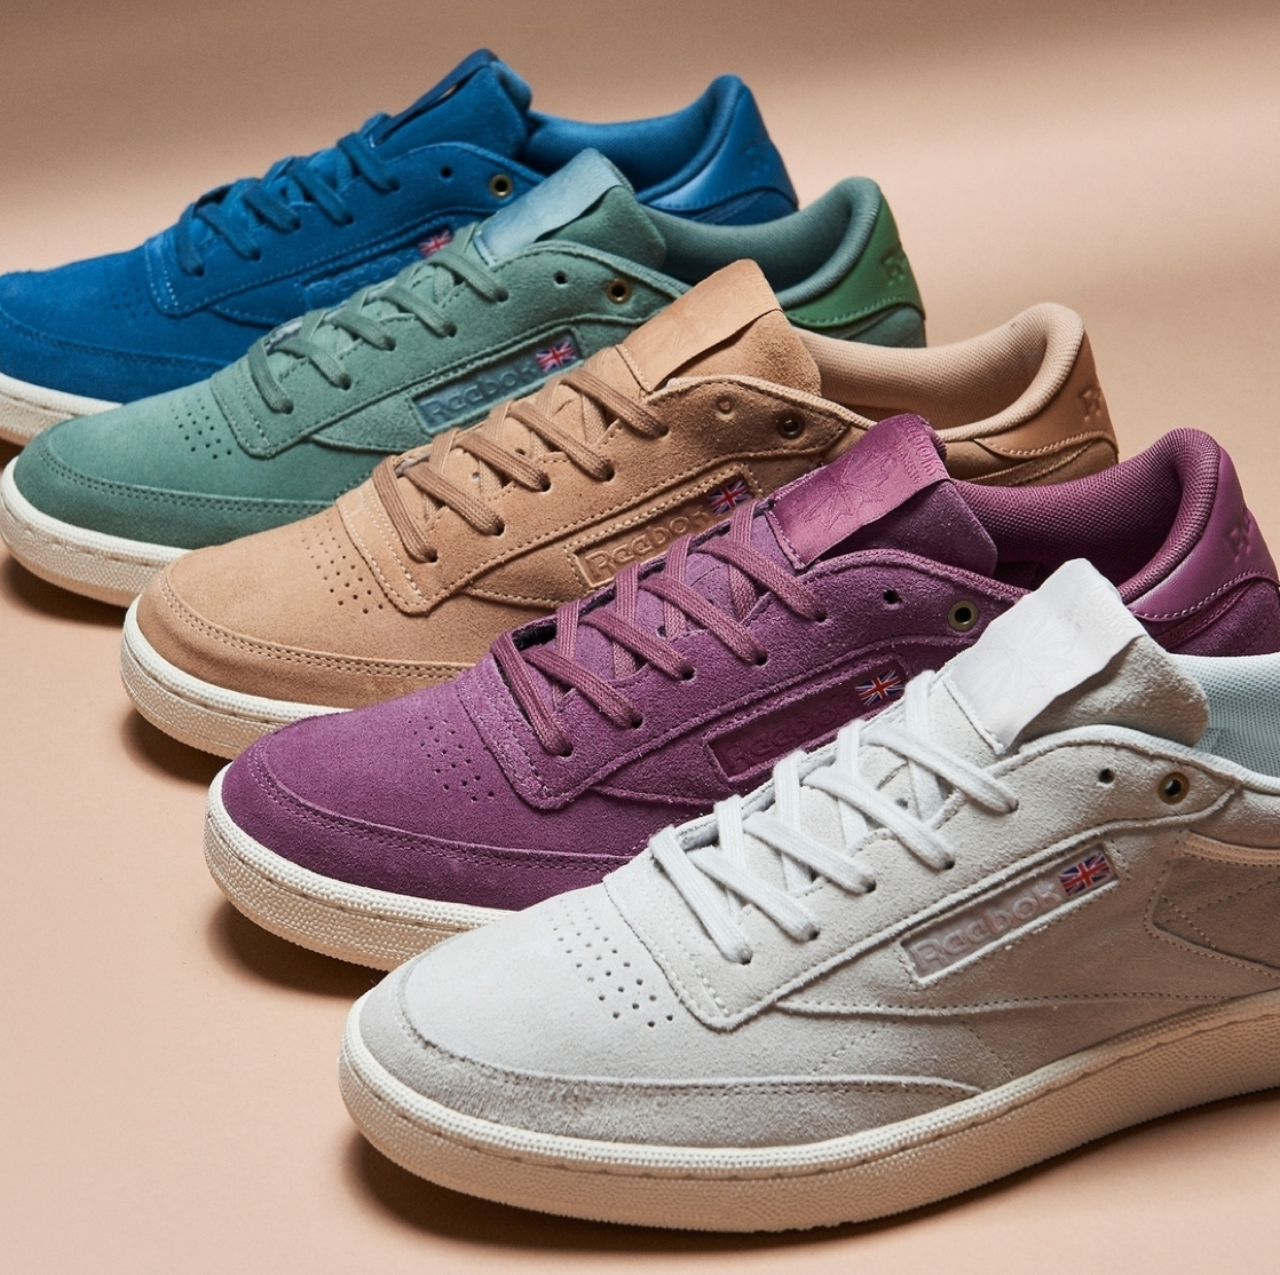 f231554a14e4c4 Add Some Color With The Latest Reebok Club C 85 x MCC Collection — CNK  DailyChicksNKicks